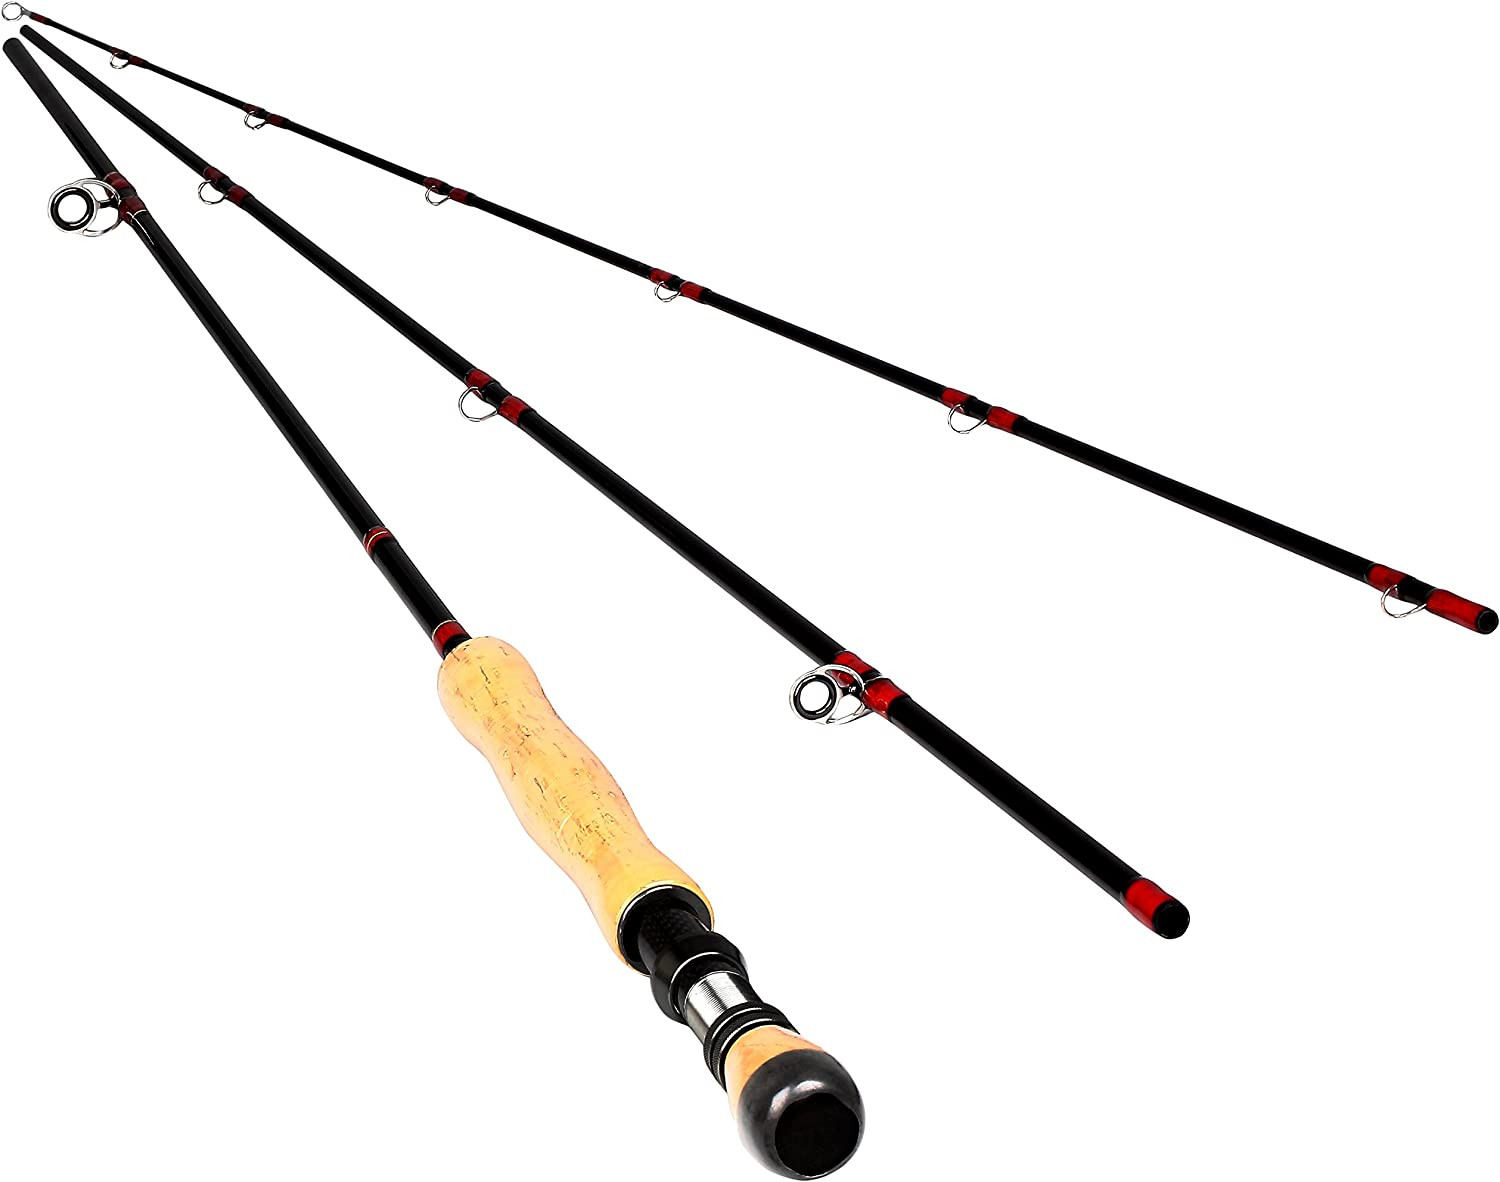 10/' # 3//4 Carbon Fly Fishing Rod Pole 4 Pieces Medium-Fast Action Light Feel